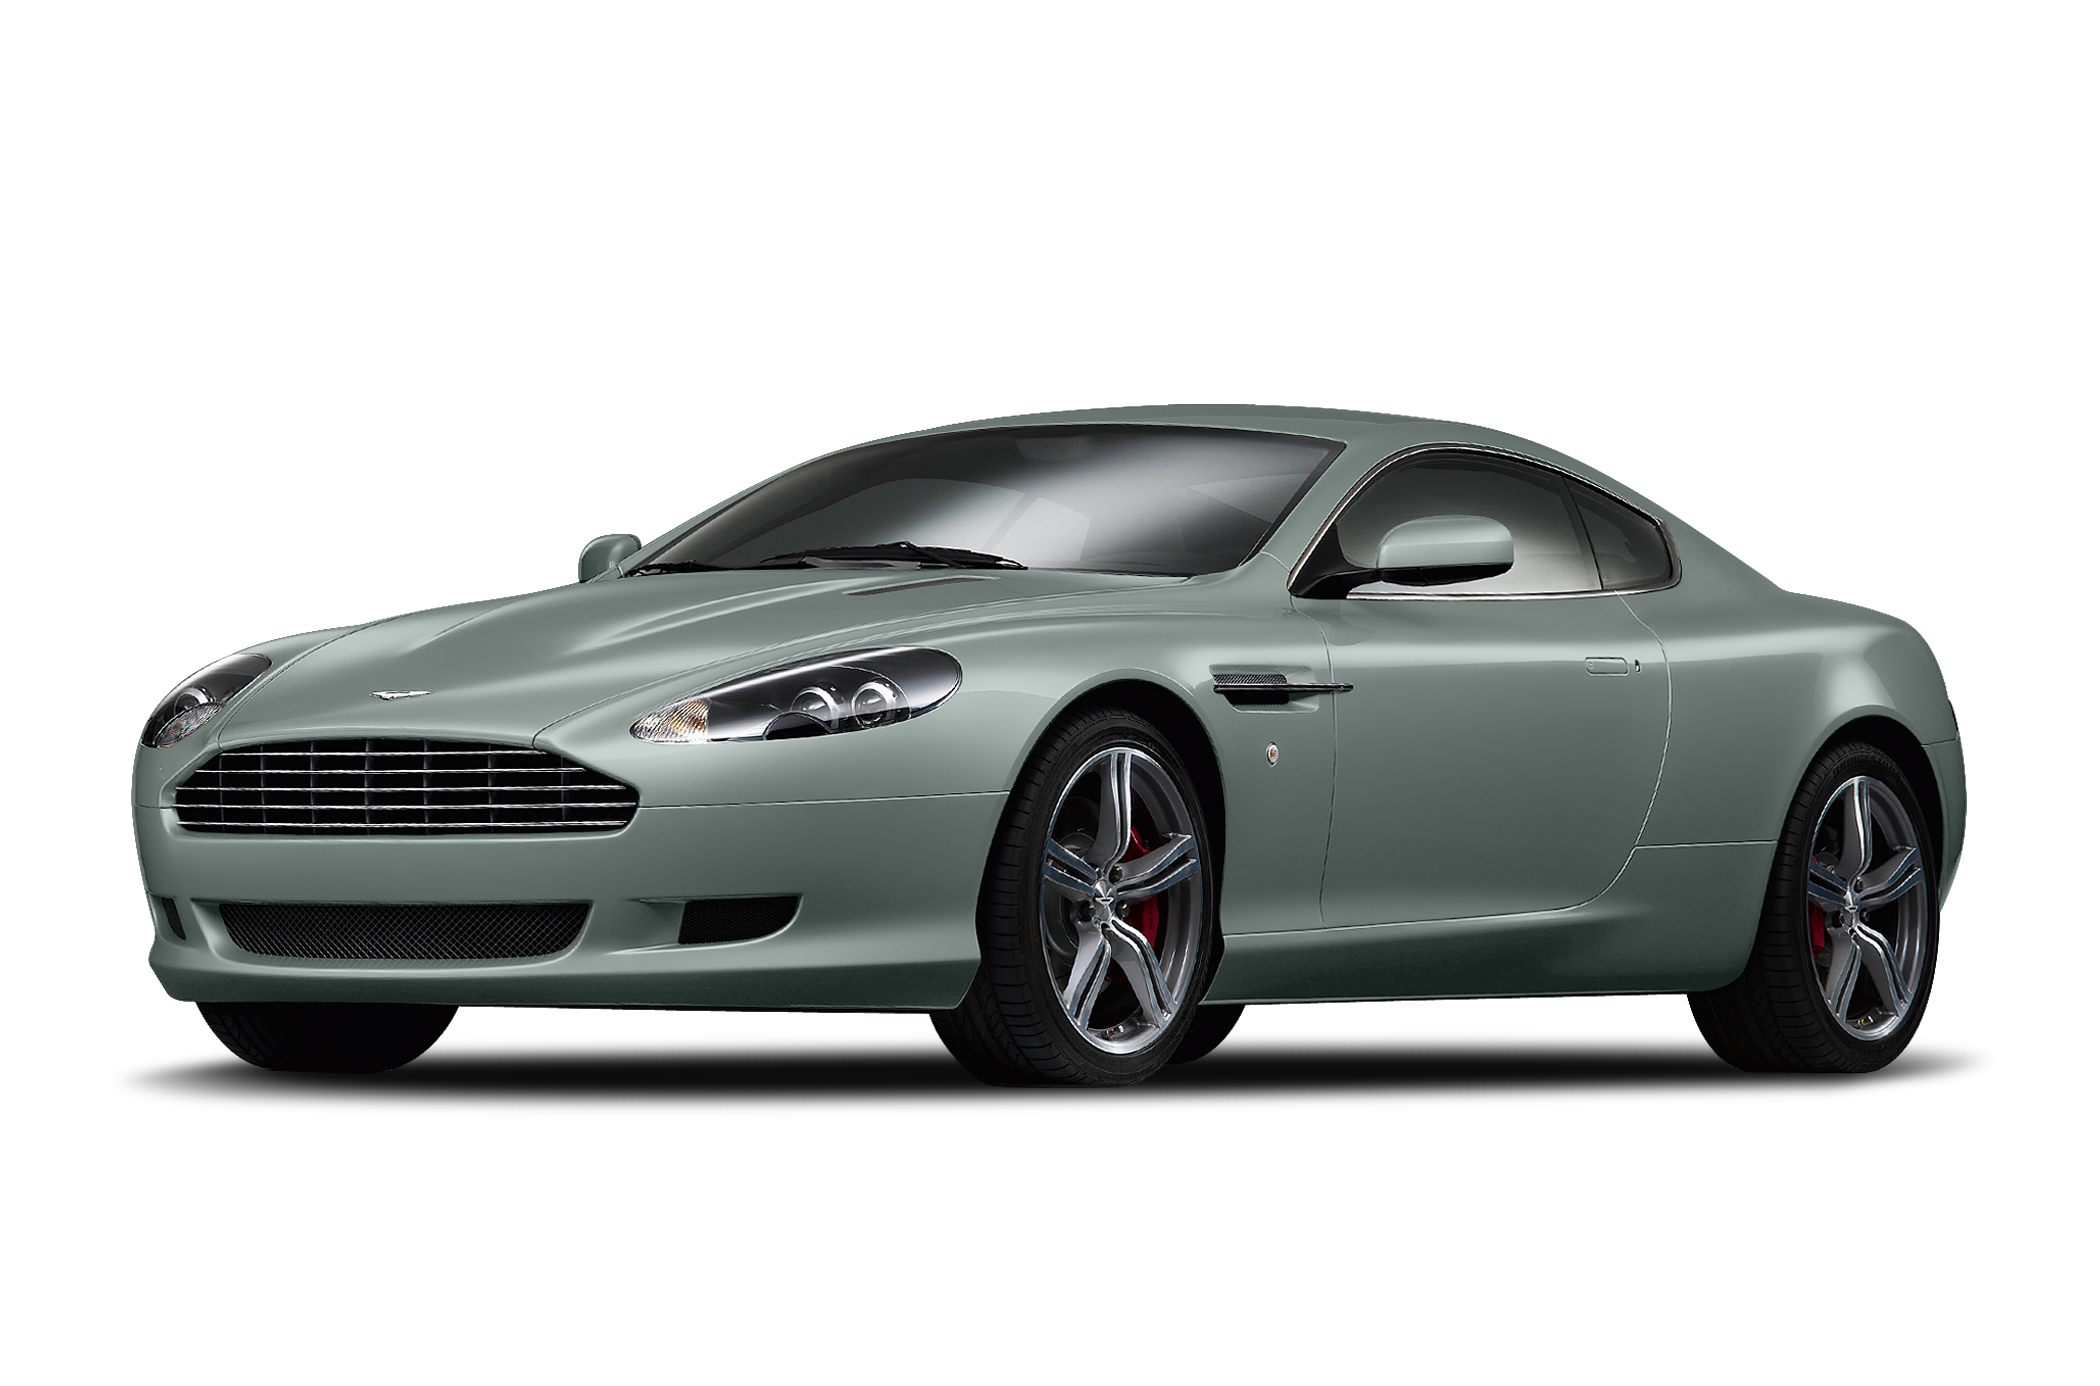 2008 Aston Martin Db9 Pricing And Specs